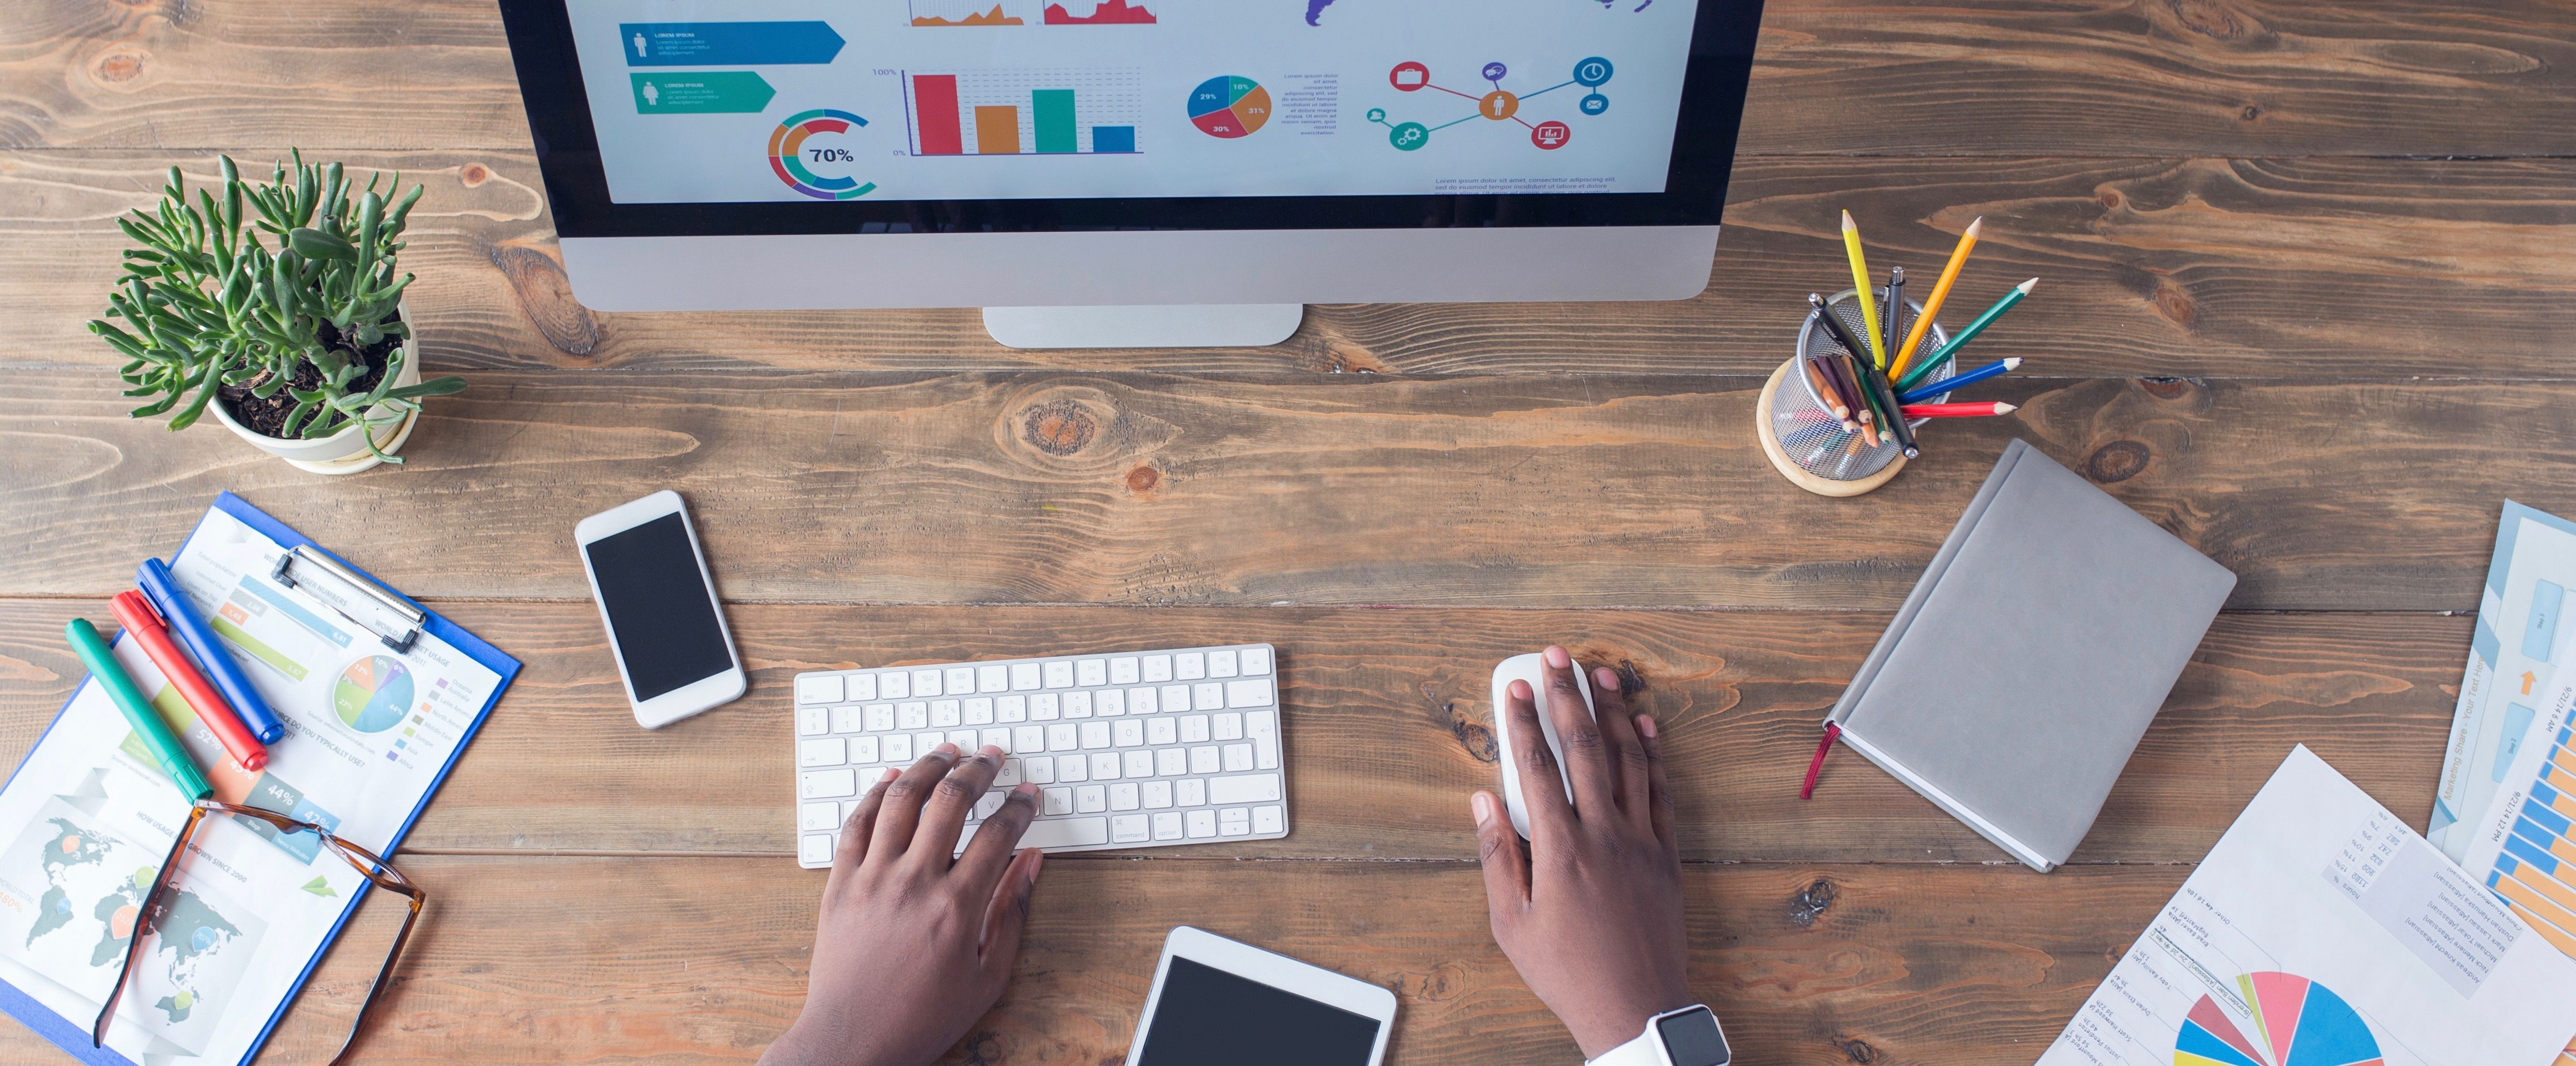 7 Digital Marketing Strategies That Work: A Complete Guide